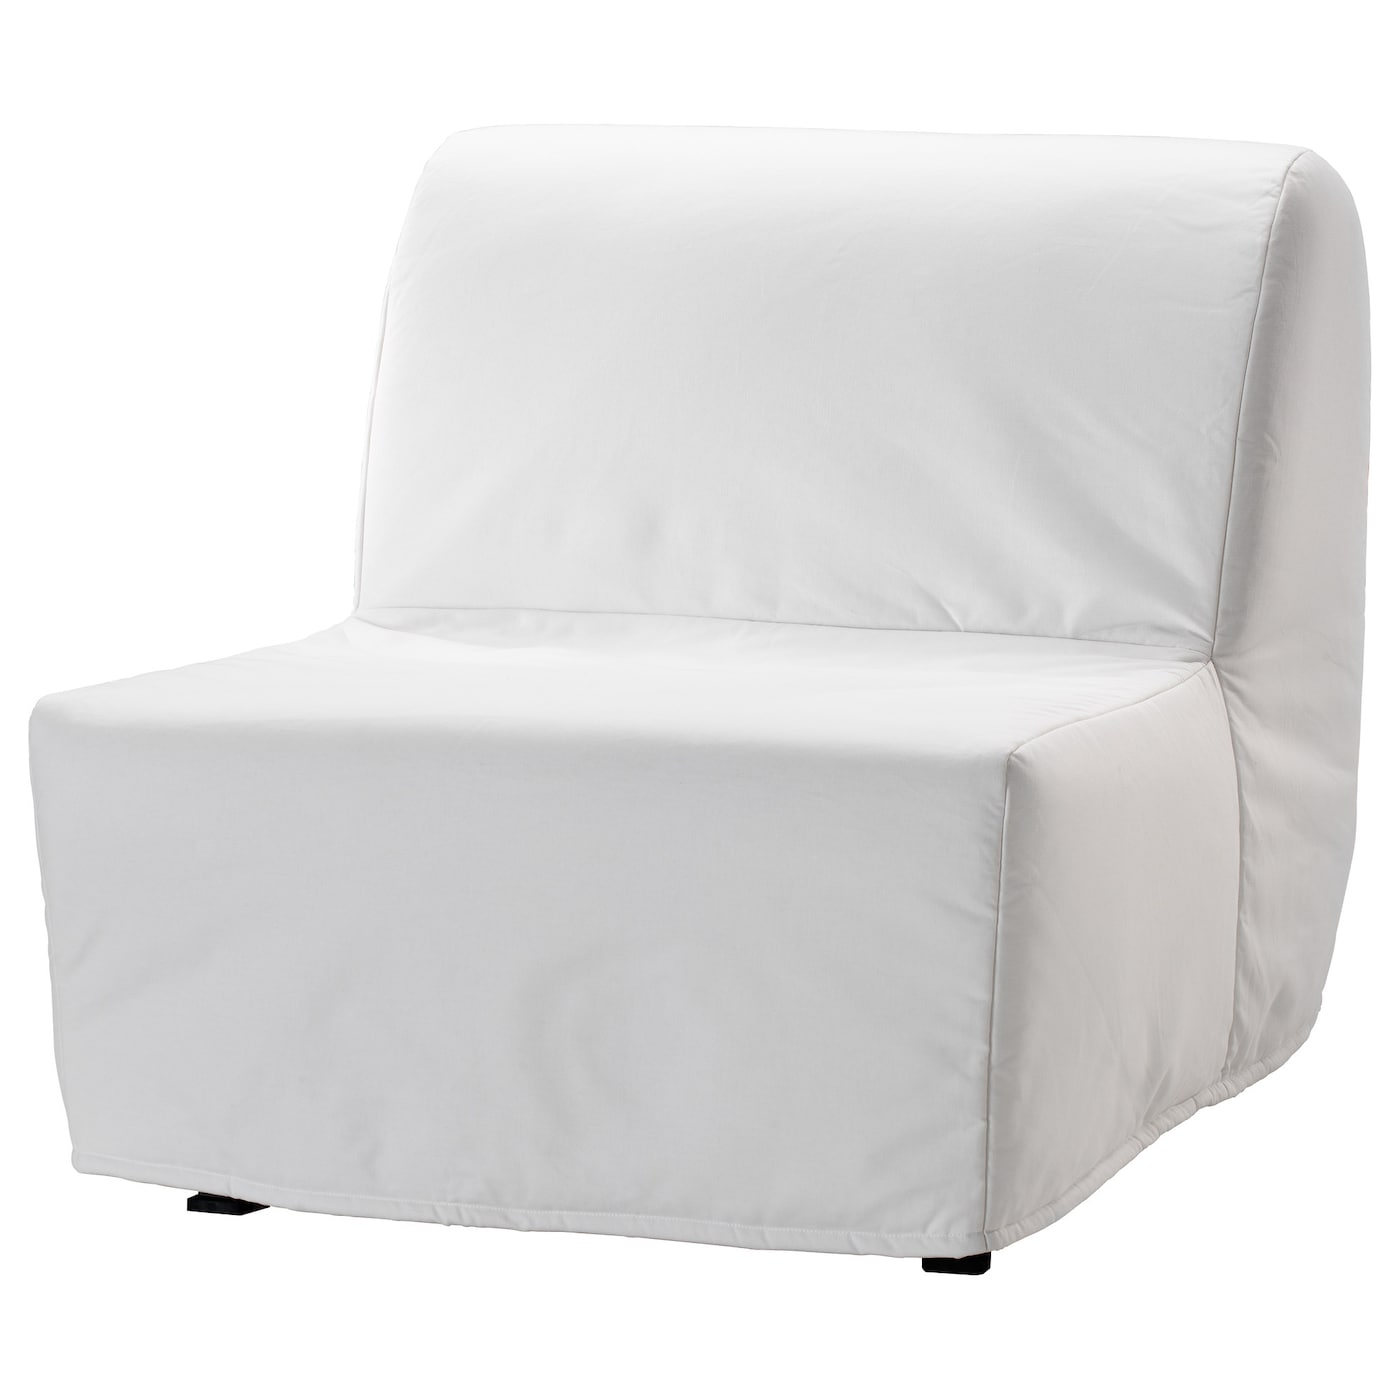 LYCKSELE MURBO Ransta white, Chair bed